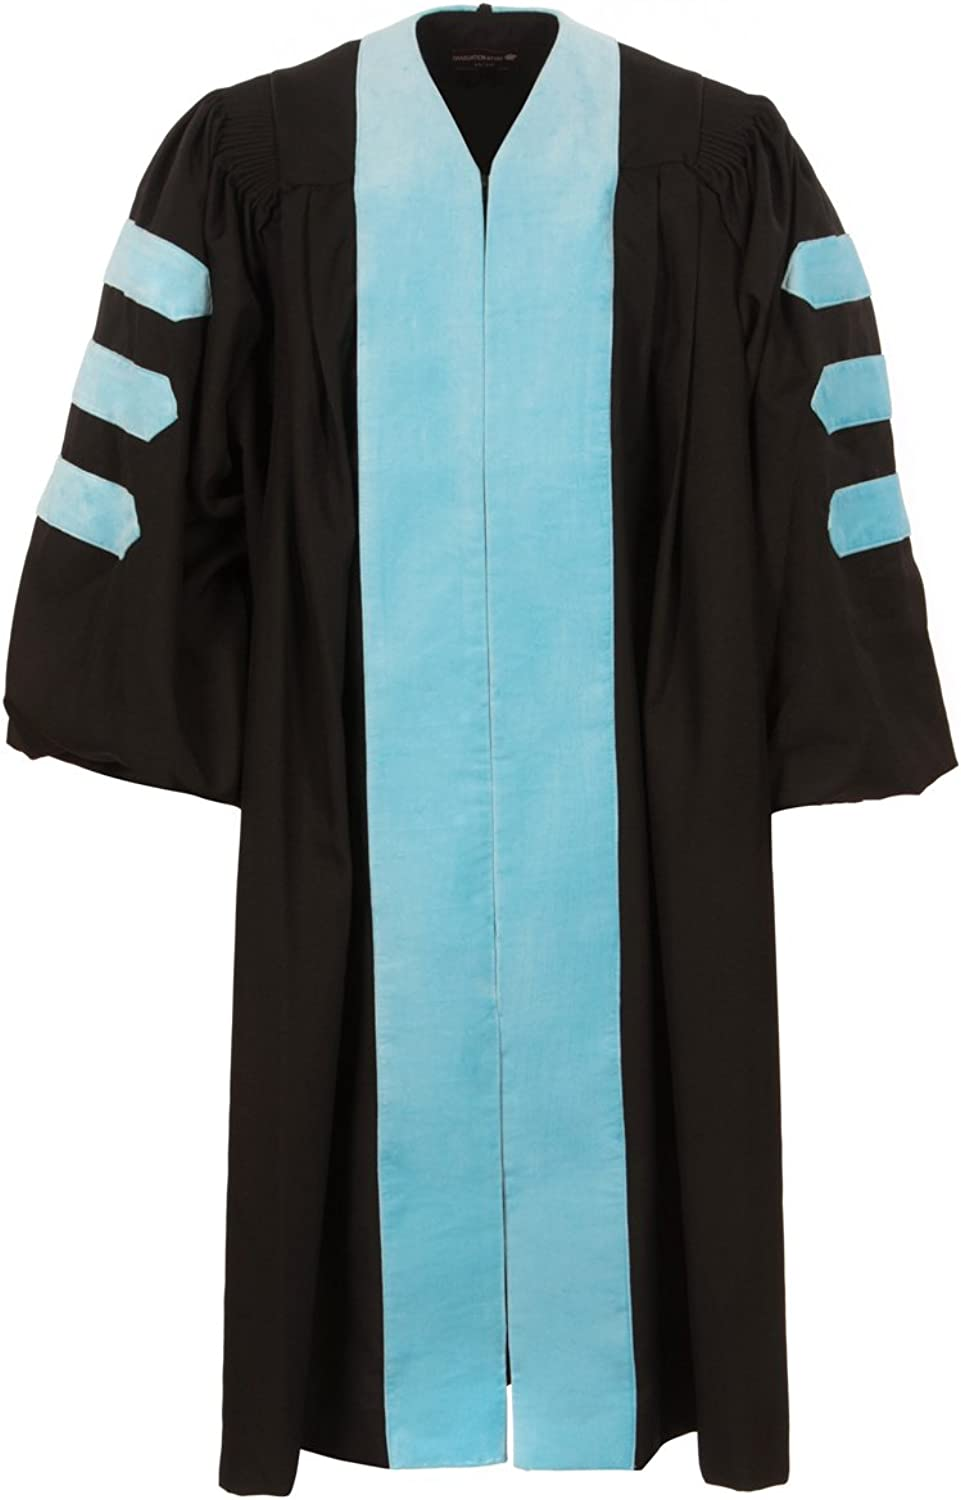 Graduation Attire American Doctoral Gown (Black with Sky bluee Velvet and no Piping)